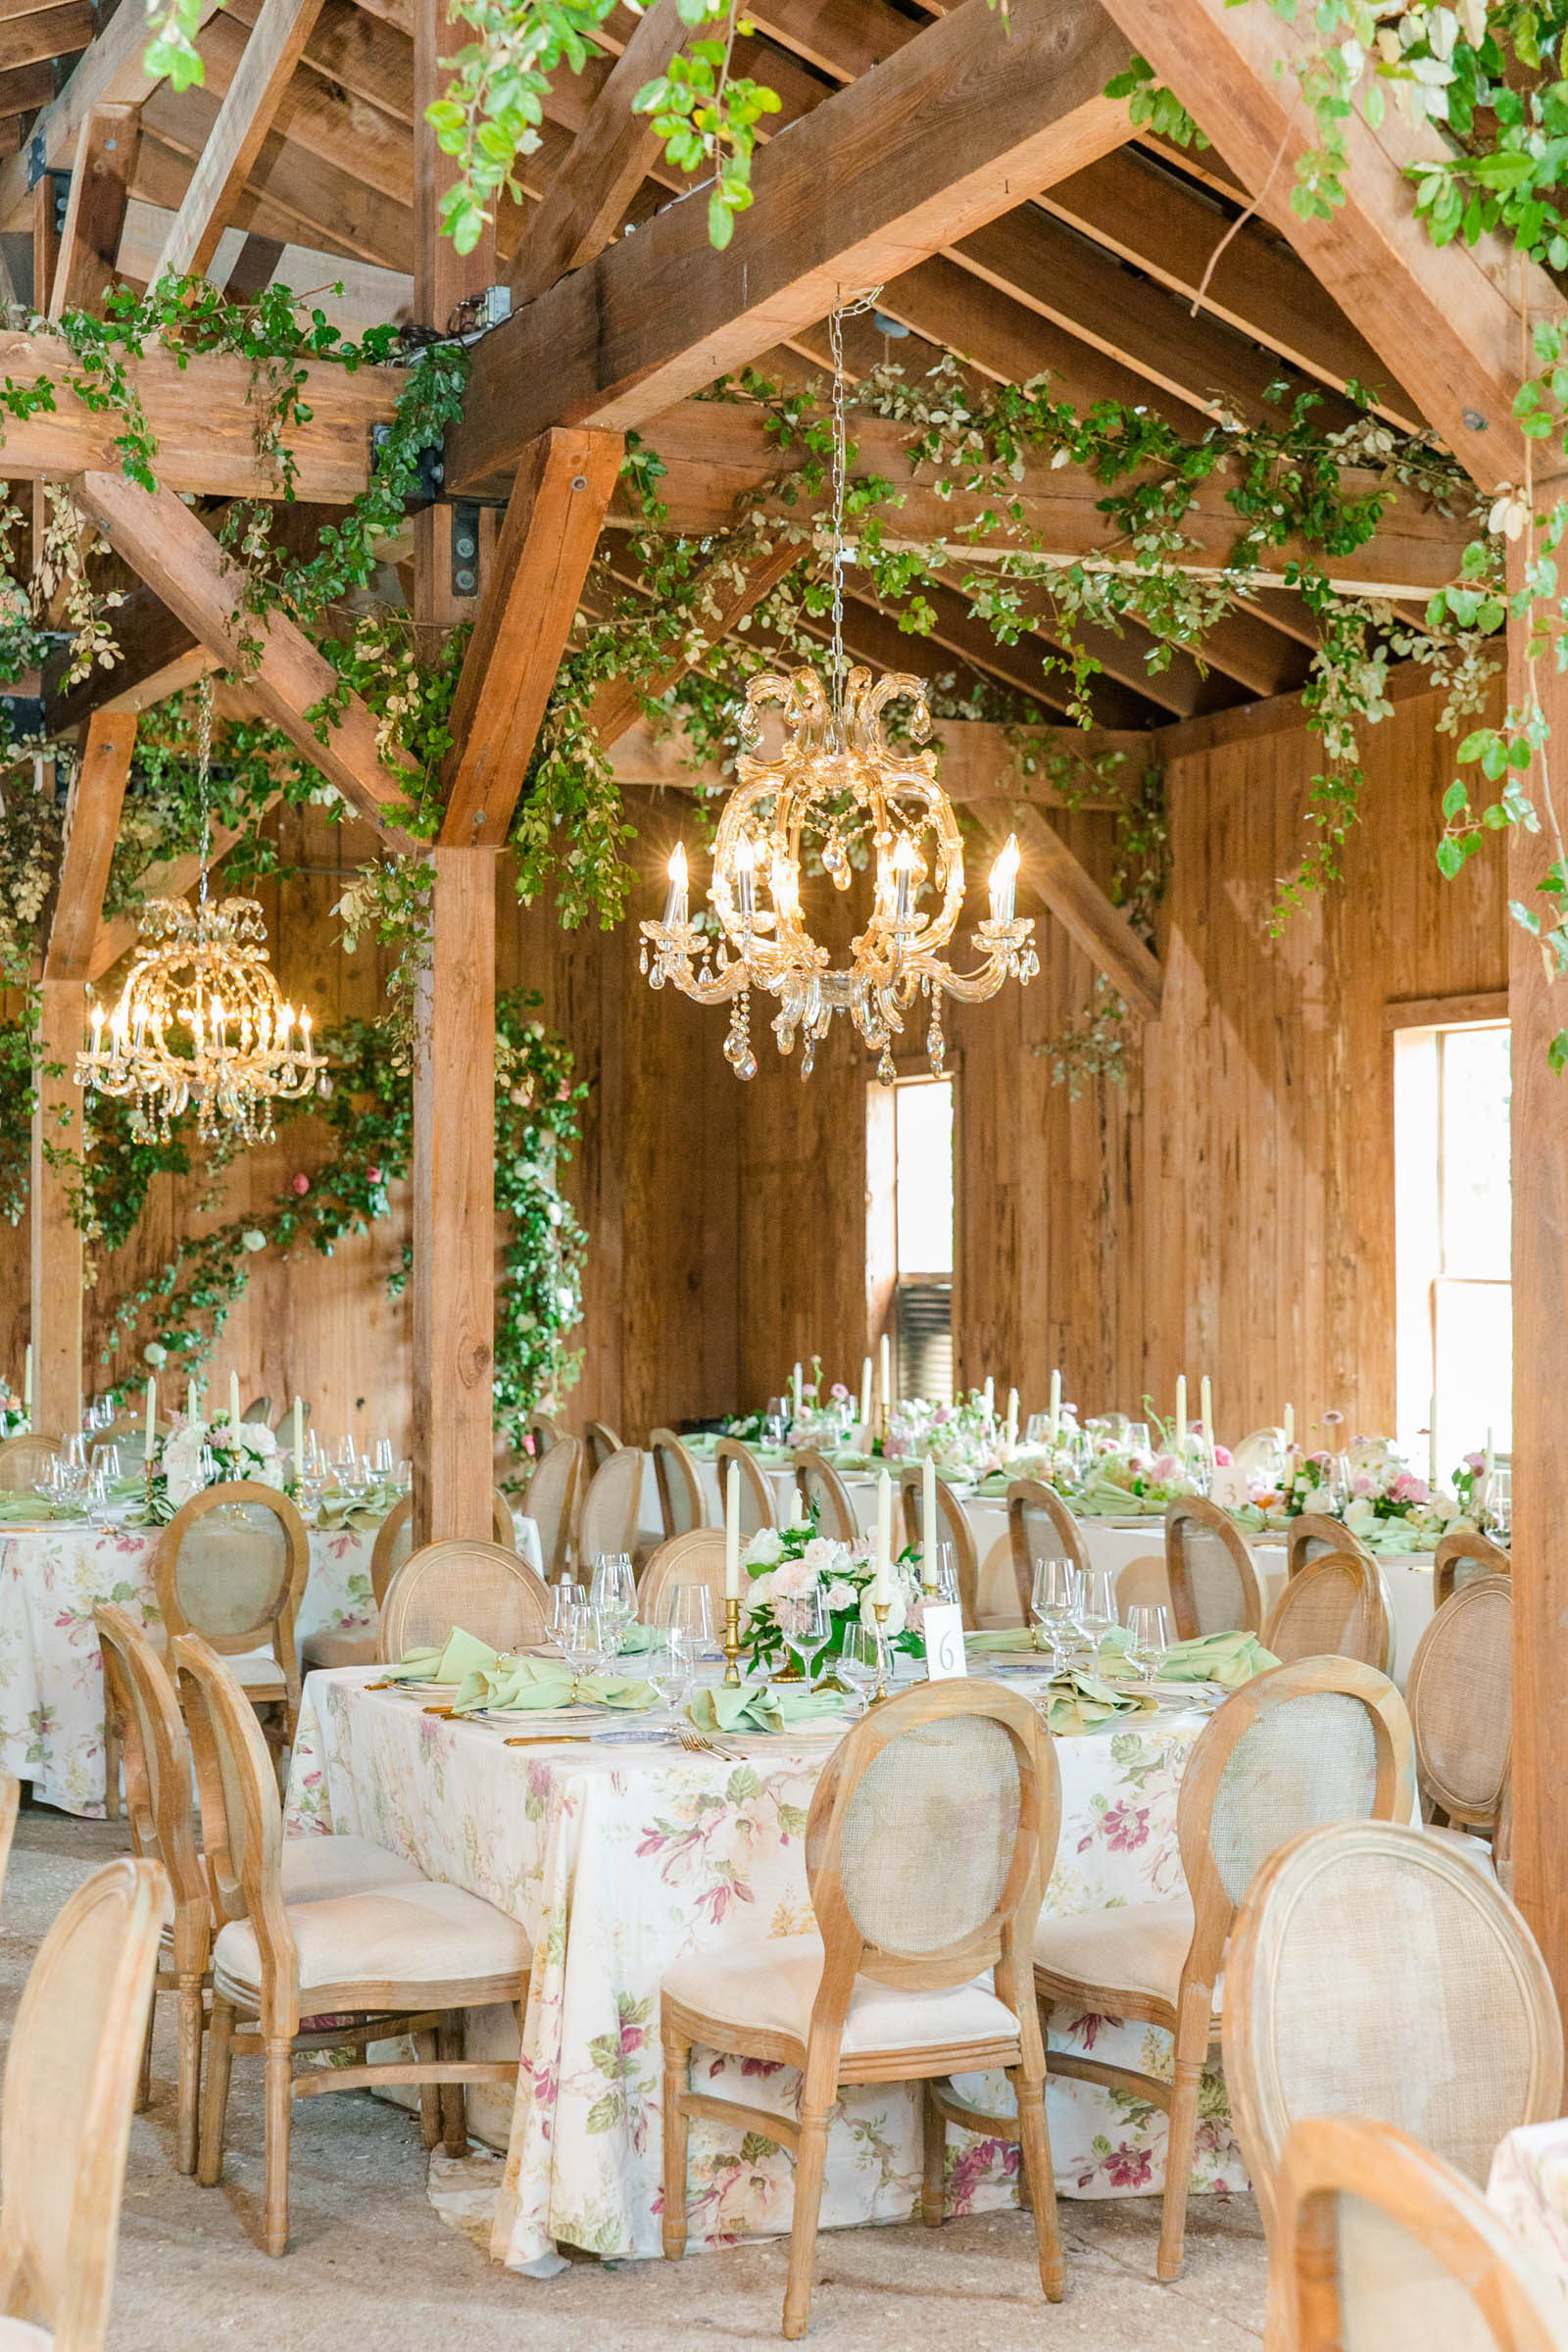 Rustic reception space - photo by Dana Cubbage Weddings